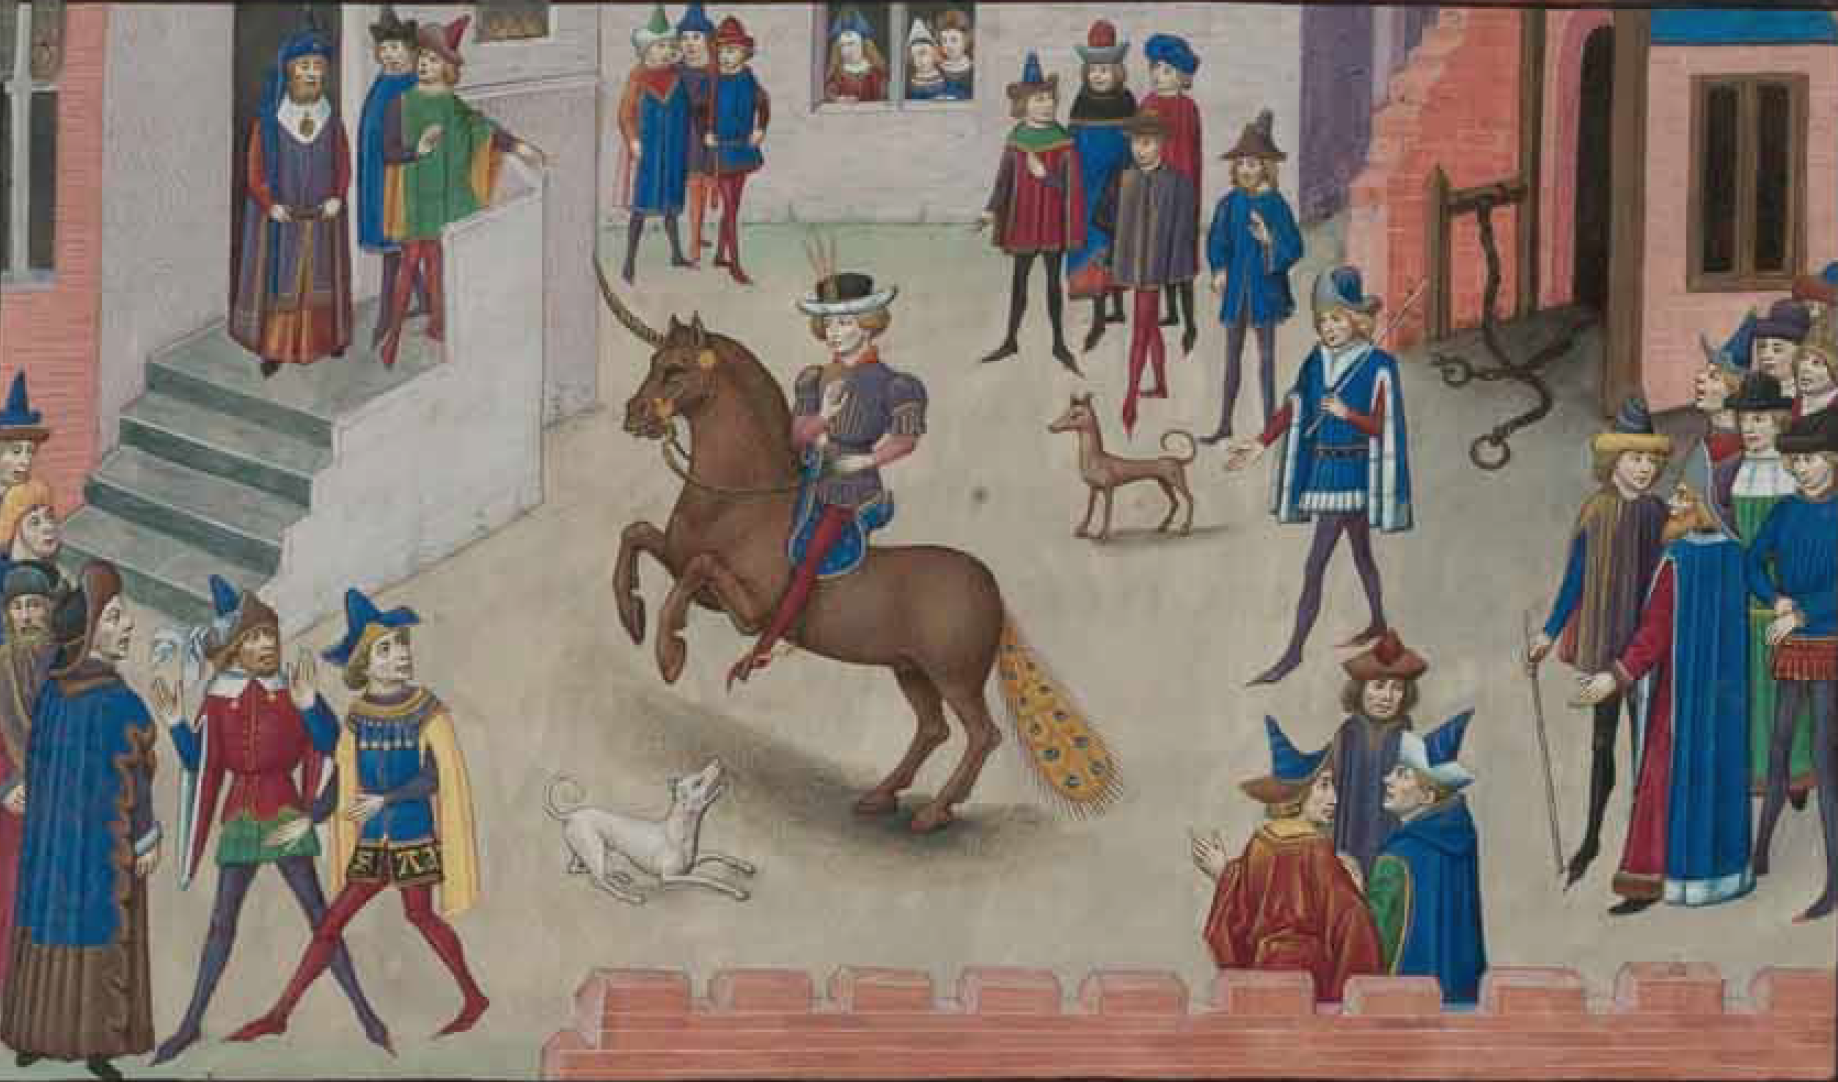 How Alexander the Great Mounted Bucephalus (a manuscript illustration), mid-1400s, Burgundy